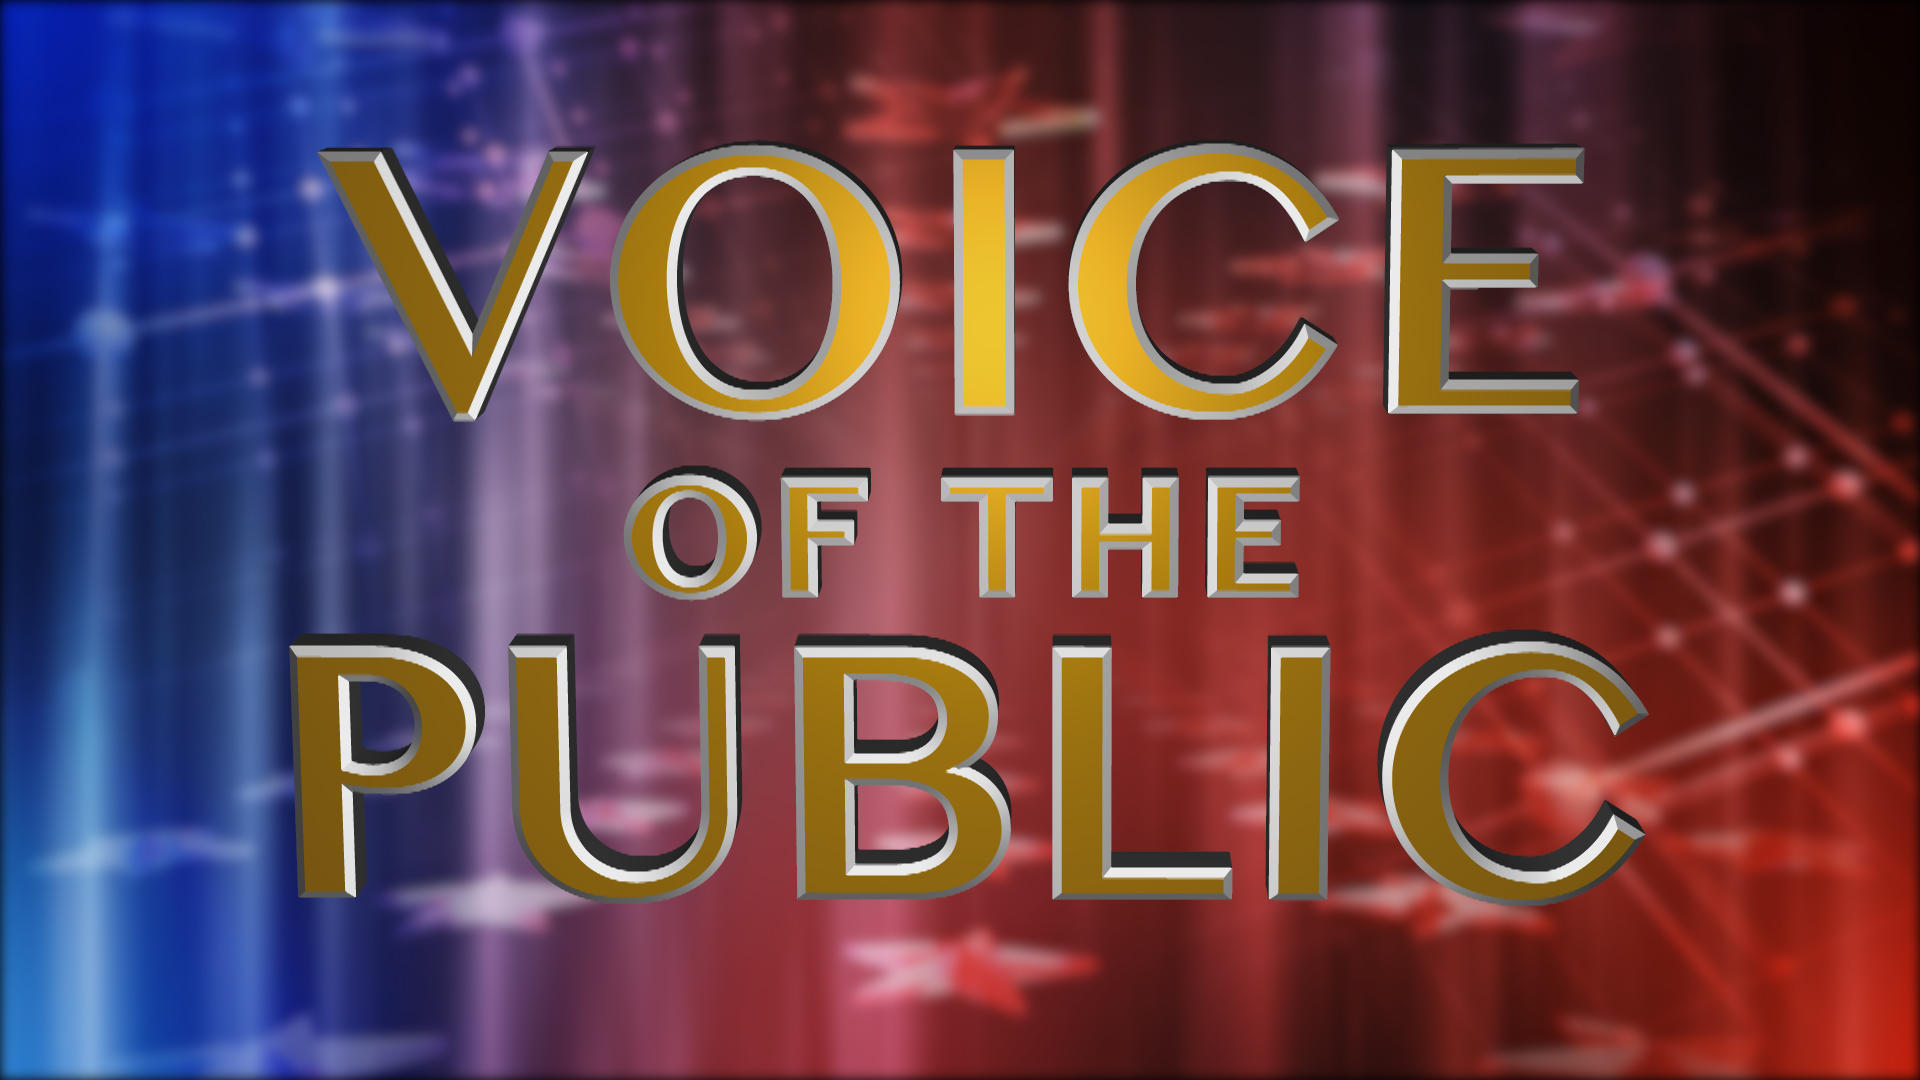 Voice Of The Public - Moving Forward After The El Paso Shooting | KRWG